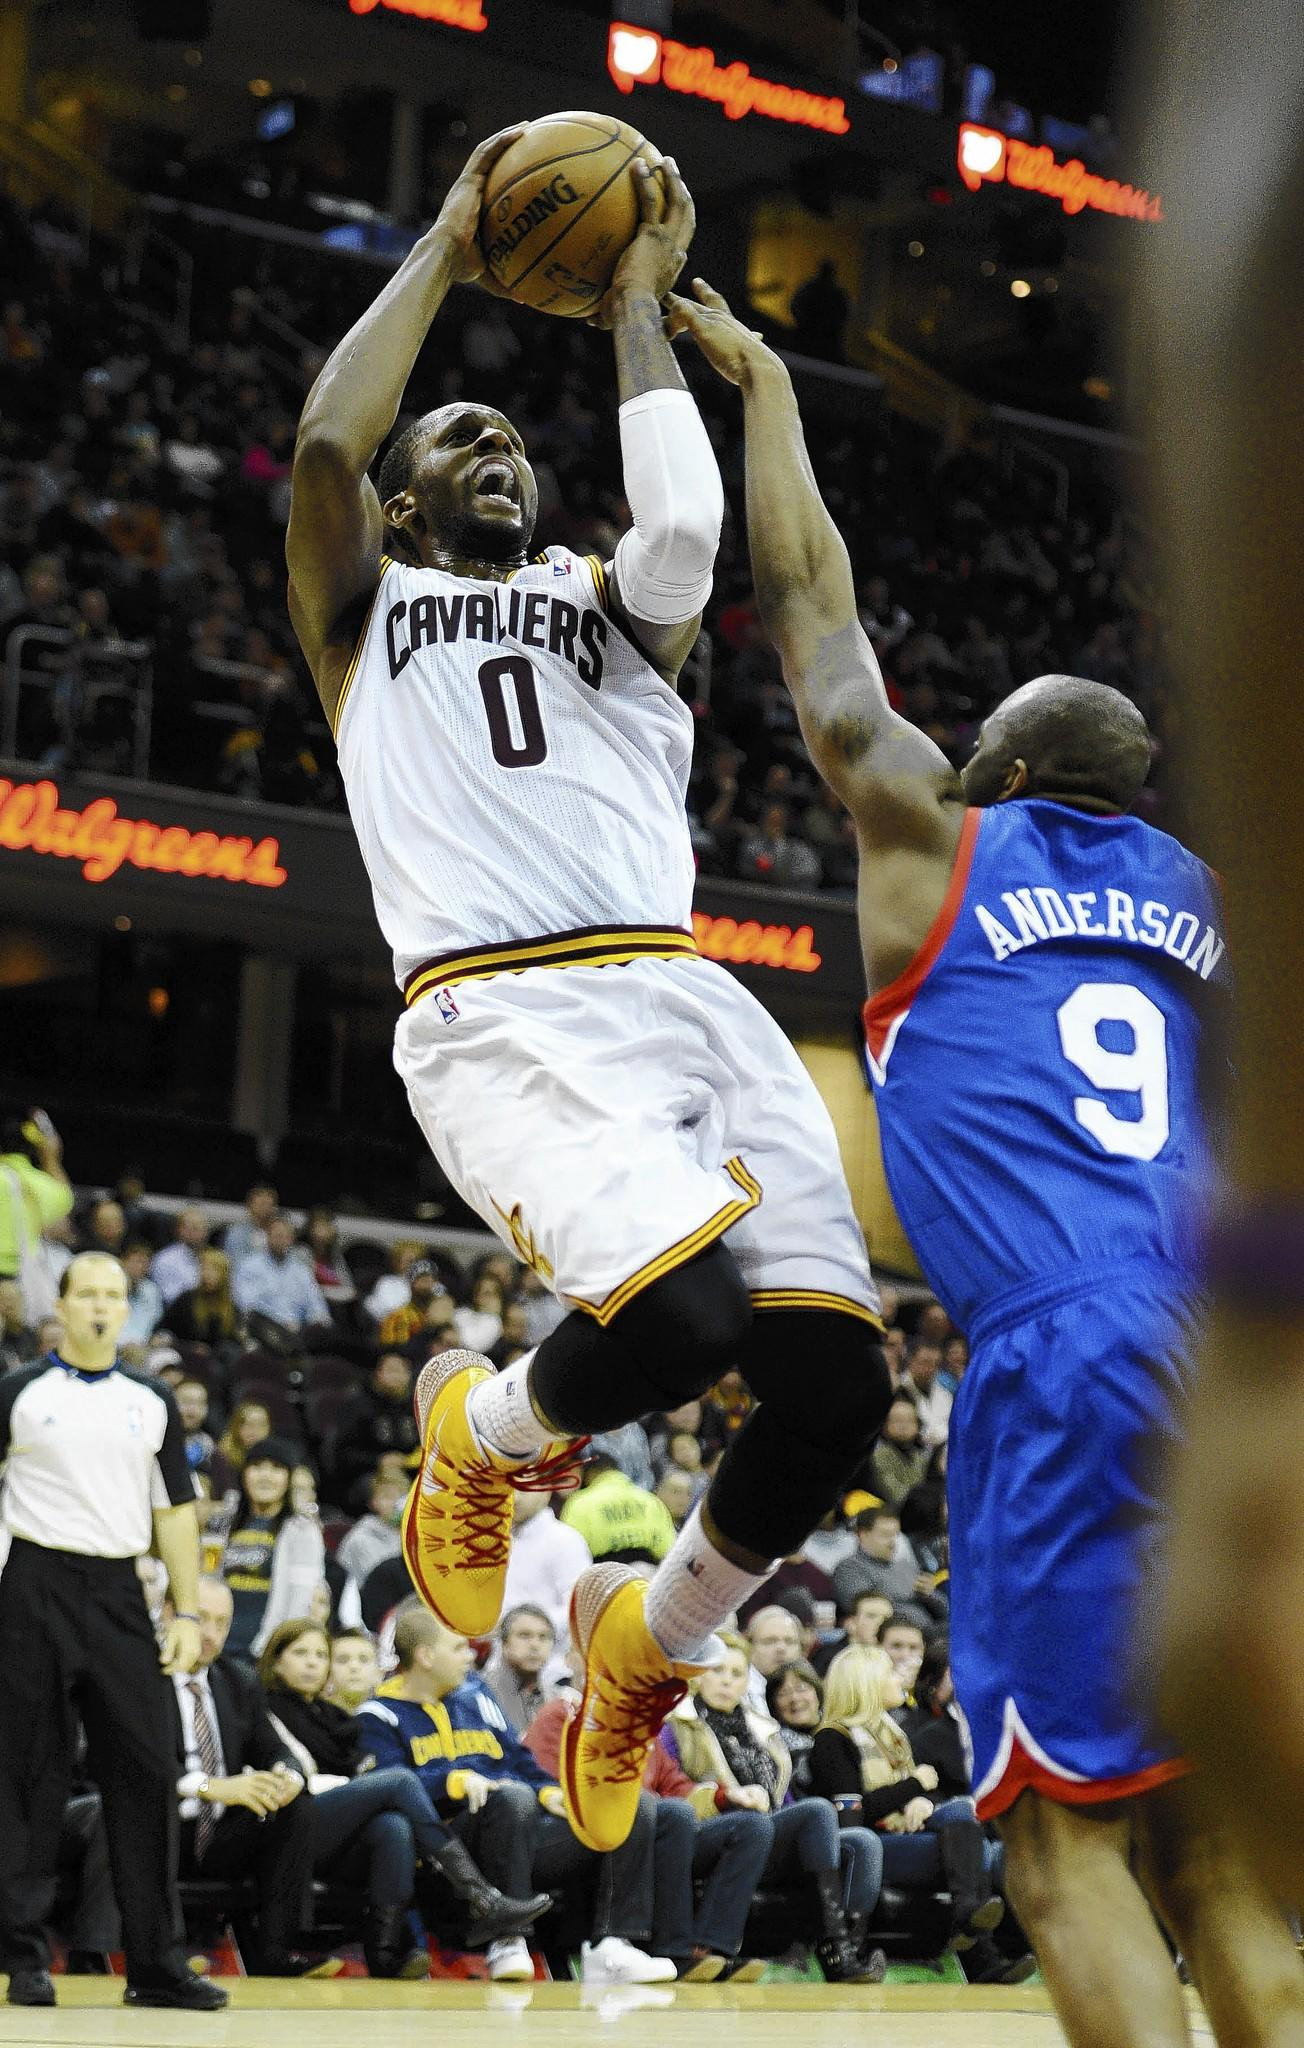 Jan 7, 2014; Cleveland, OH, USA; Cleveland Cavaliers shooting guard C.J. Miles (0) shoots over Philadelphia 76ers shooting guard James Anderson (9) during the game at Quicken Loans Arena. **